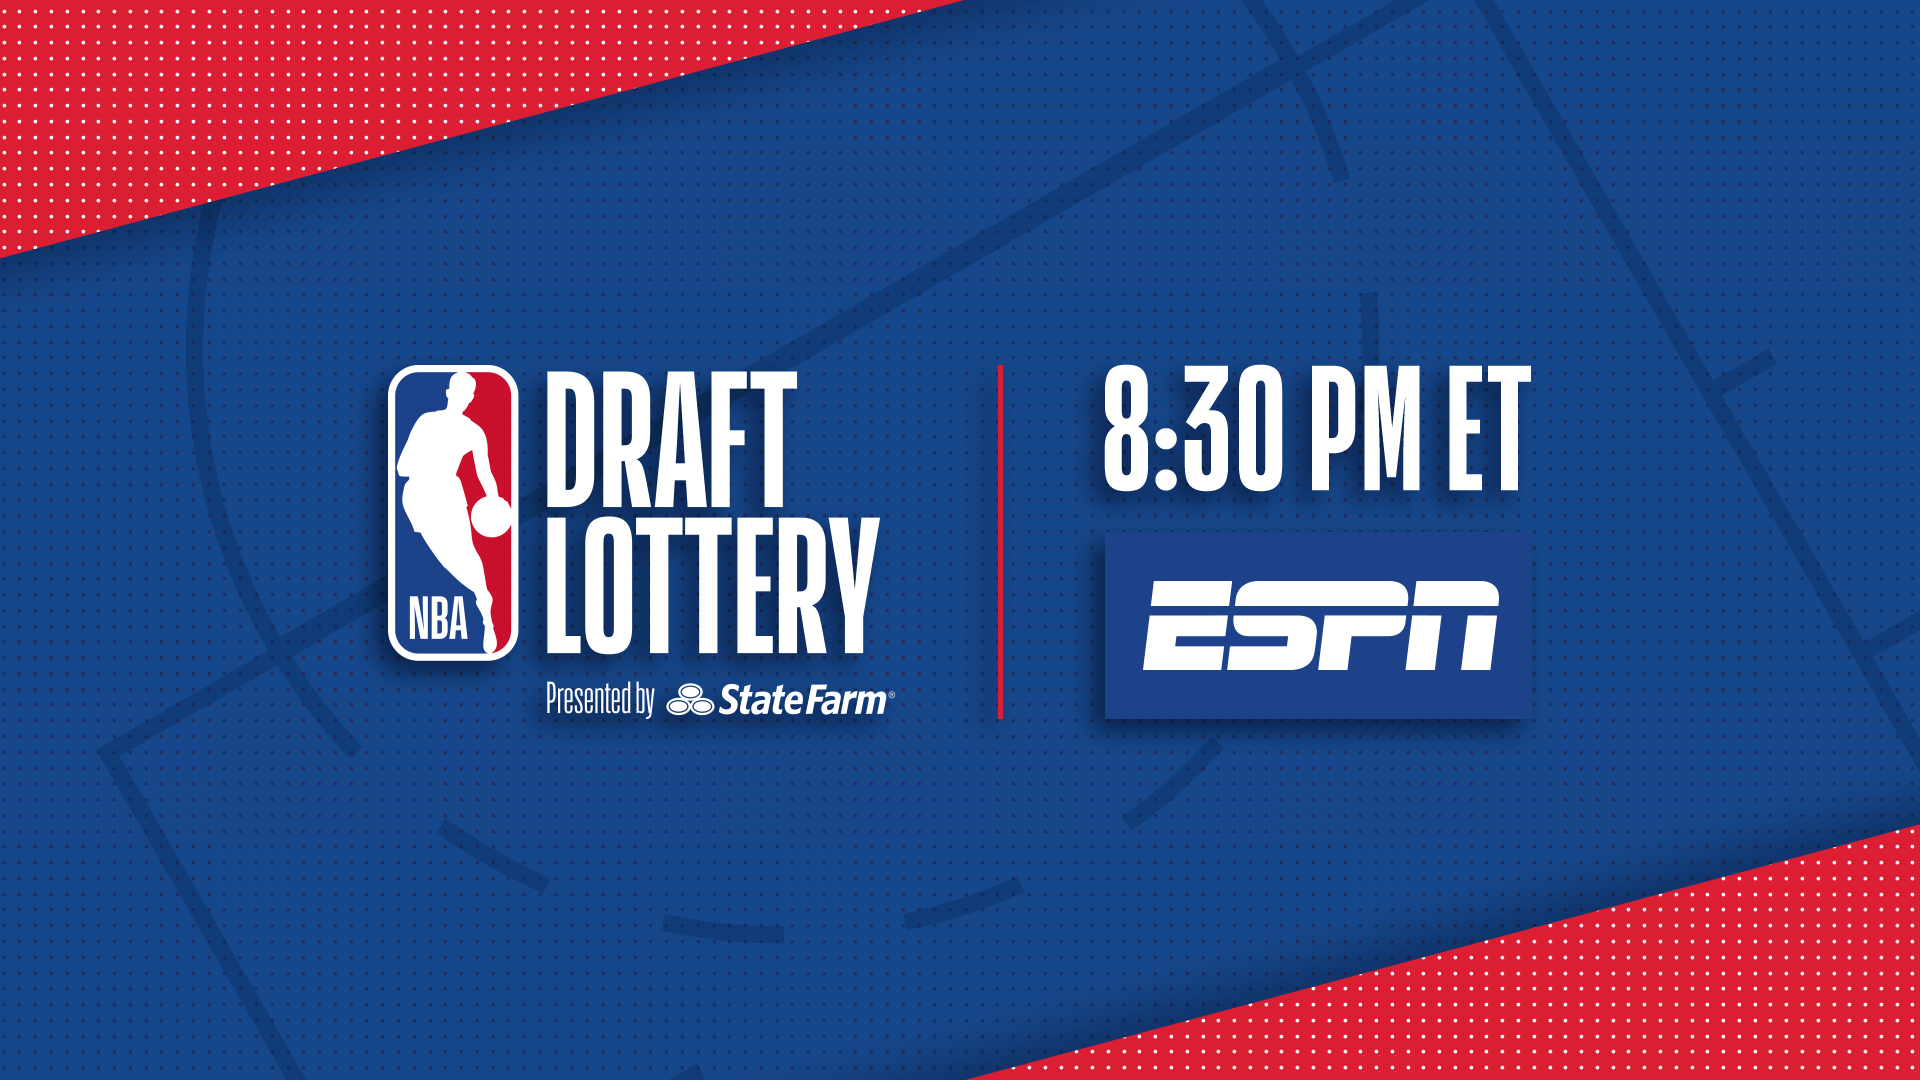 Draft Lottery looms large for teams tonight